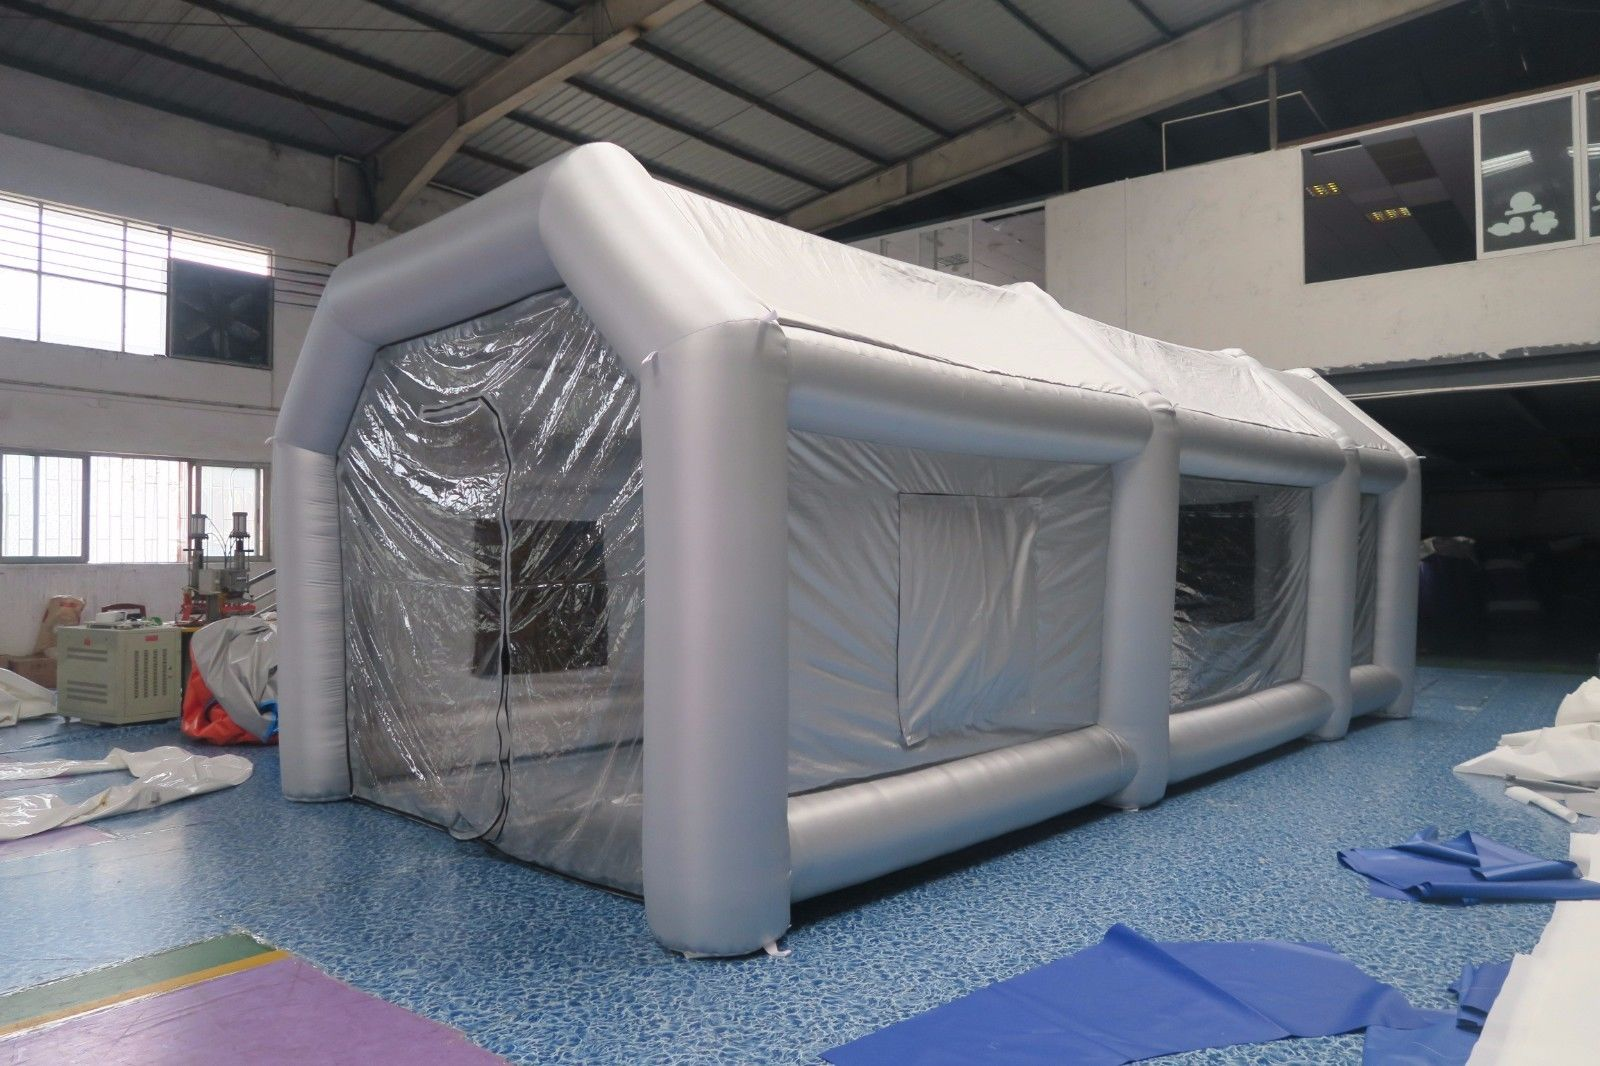 Oxford Car And Truck >> Inflatable Paint Booth Fireproof Portable Giant Car Workstation Oxford Cloth - Gray